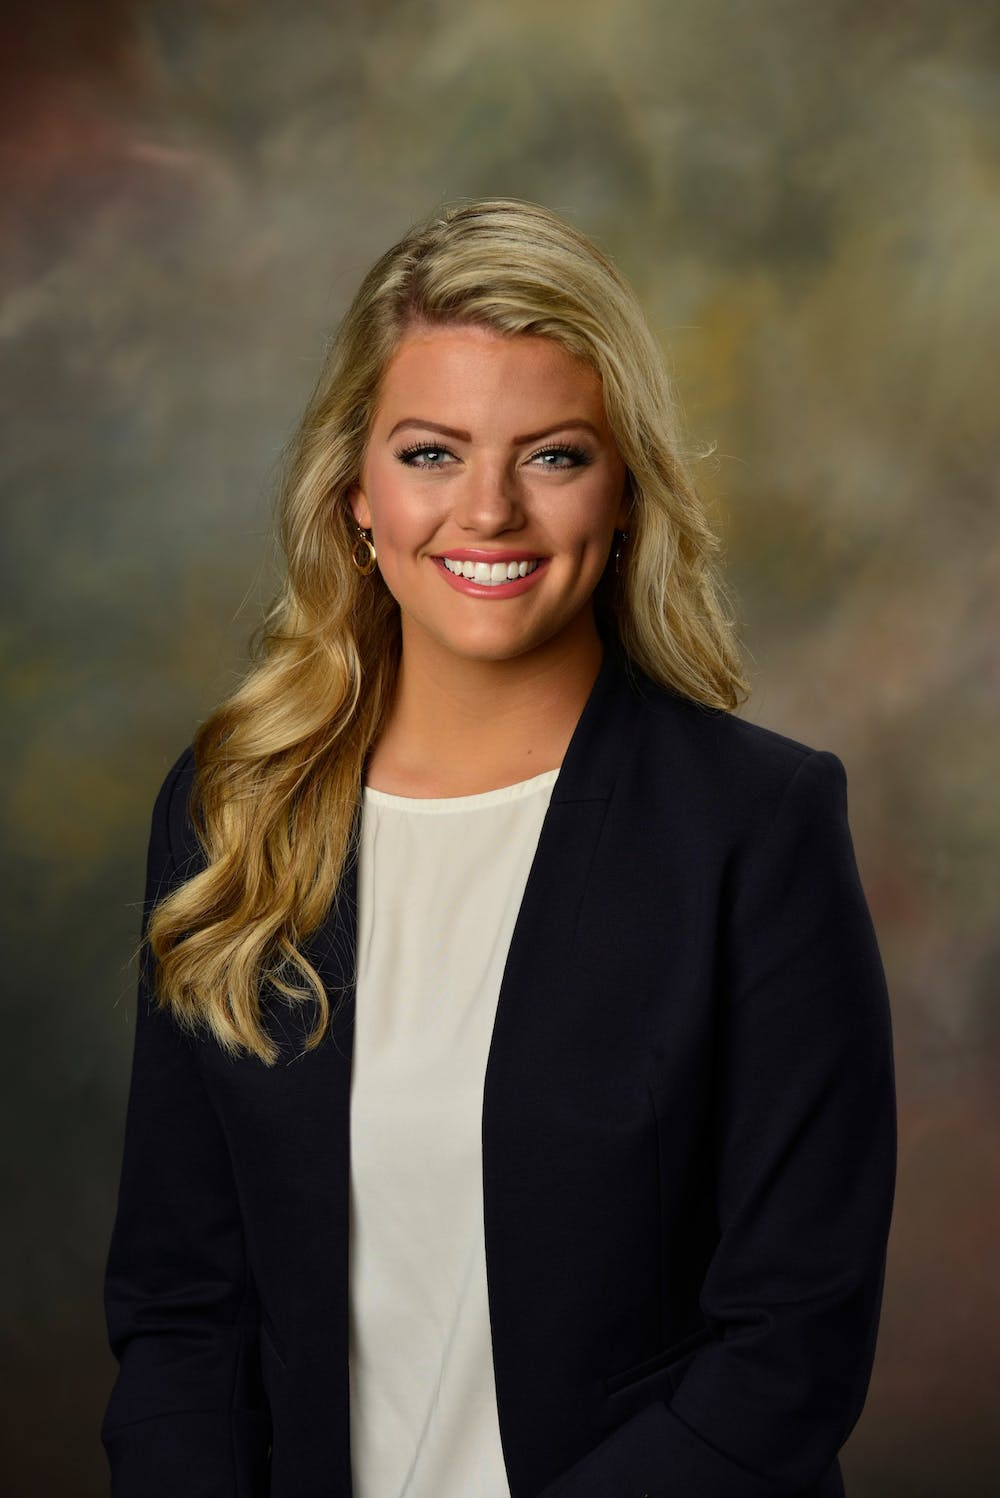 Meet Annie Ozment: candidate for SGA vice president